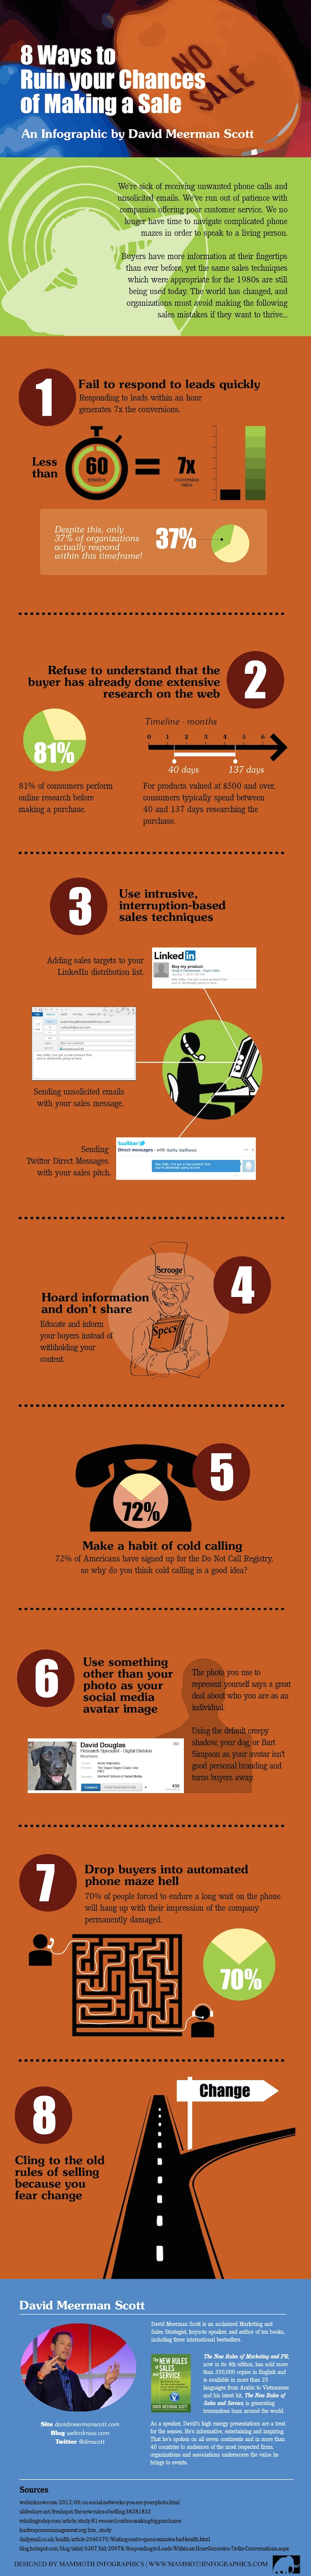 Content Social Selling Infographic